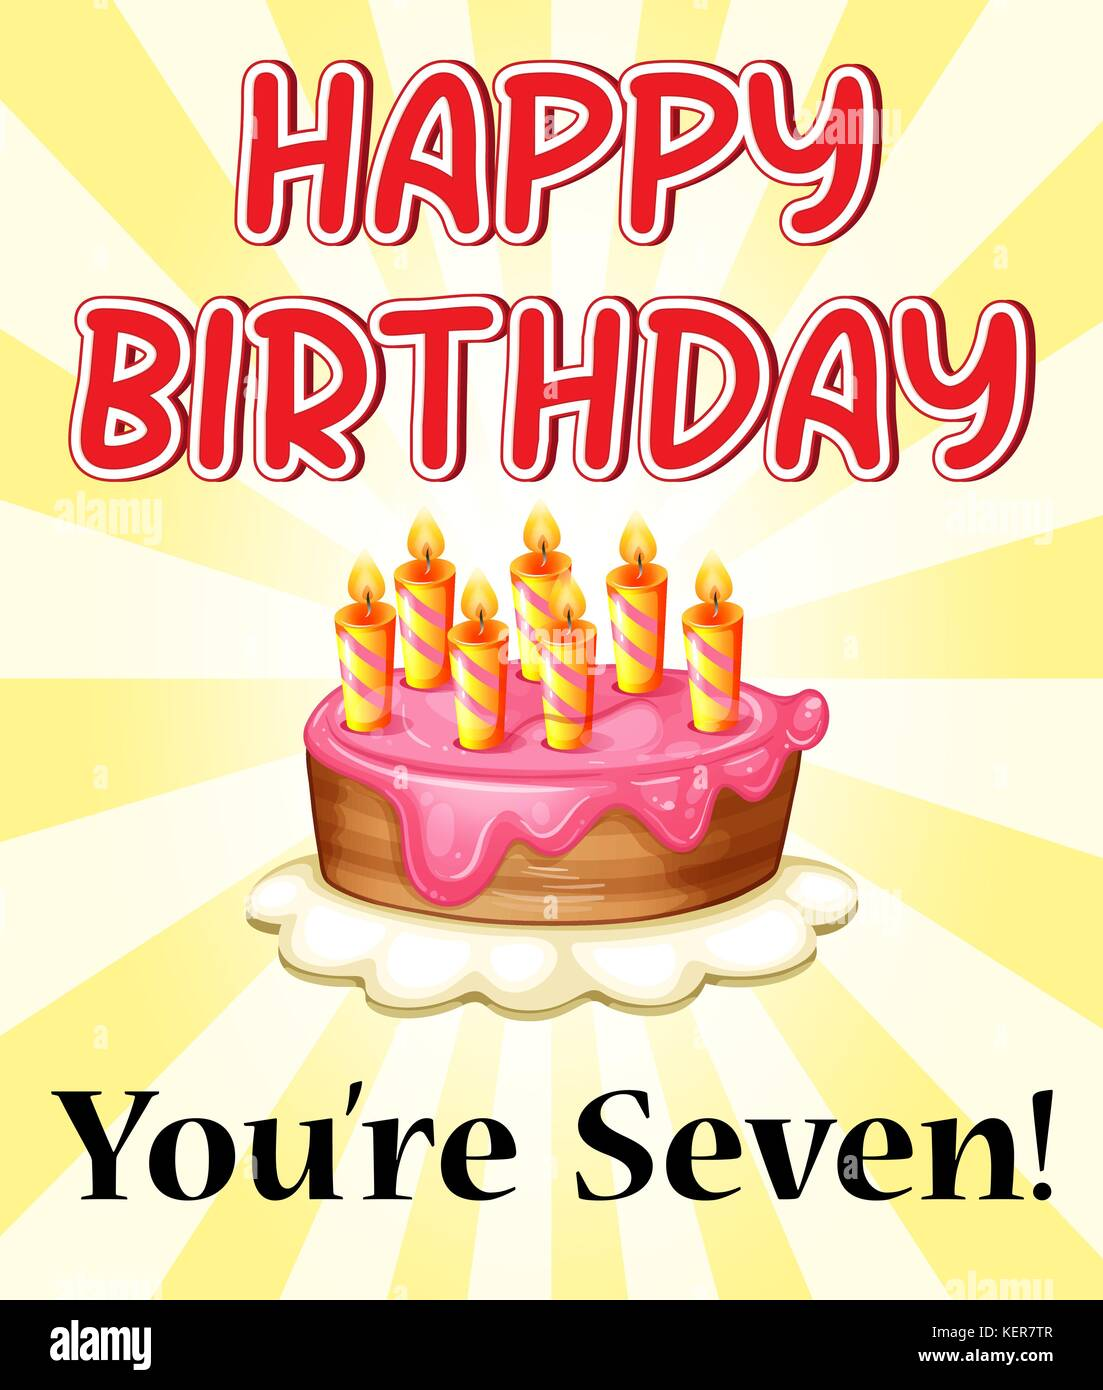 Illustration Of A Birthday Card With Cake And Seven Candles Stock